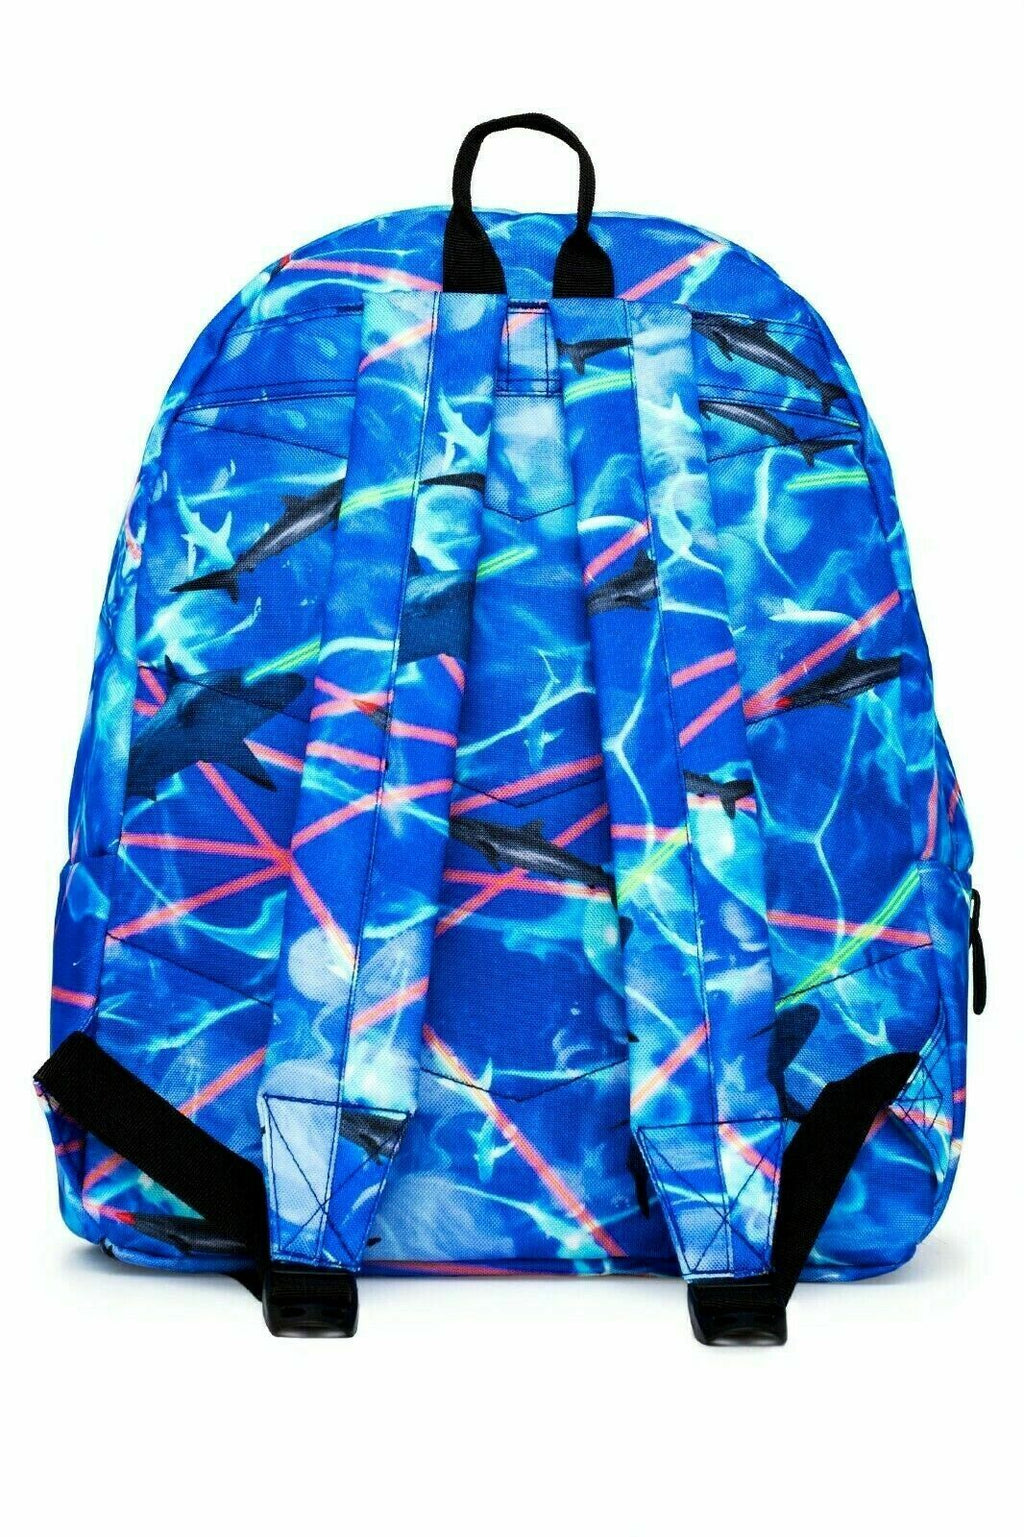 HYPE DEEP WATER BACKPACK RUCKSACK BAG - BLUE/MULTI